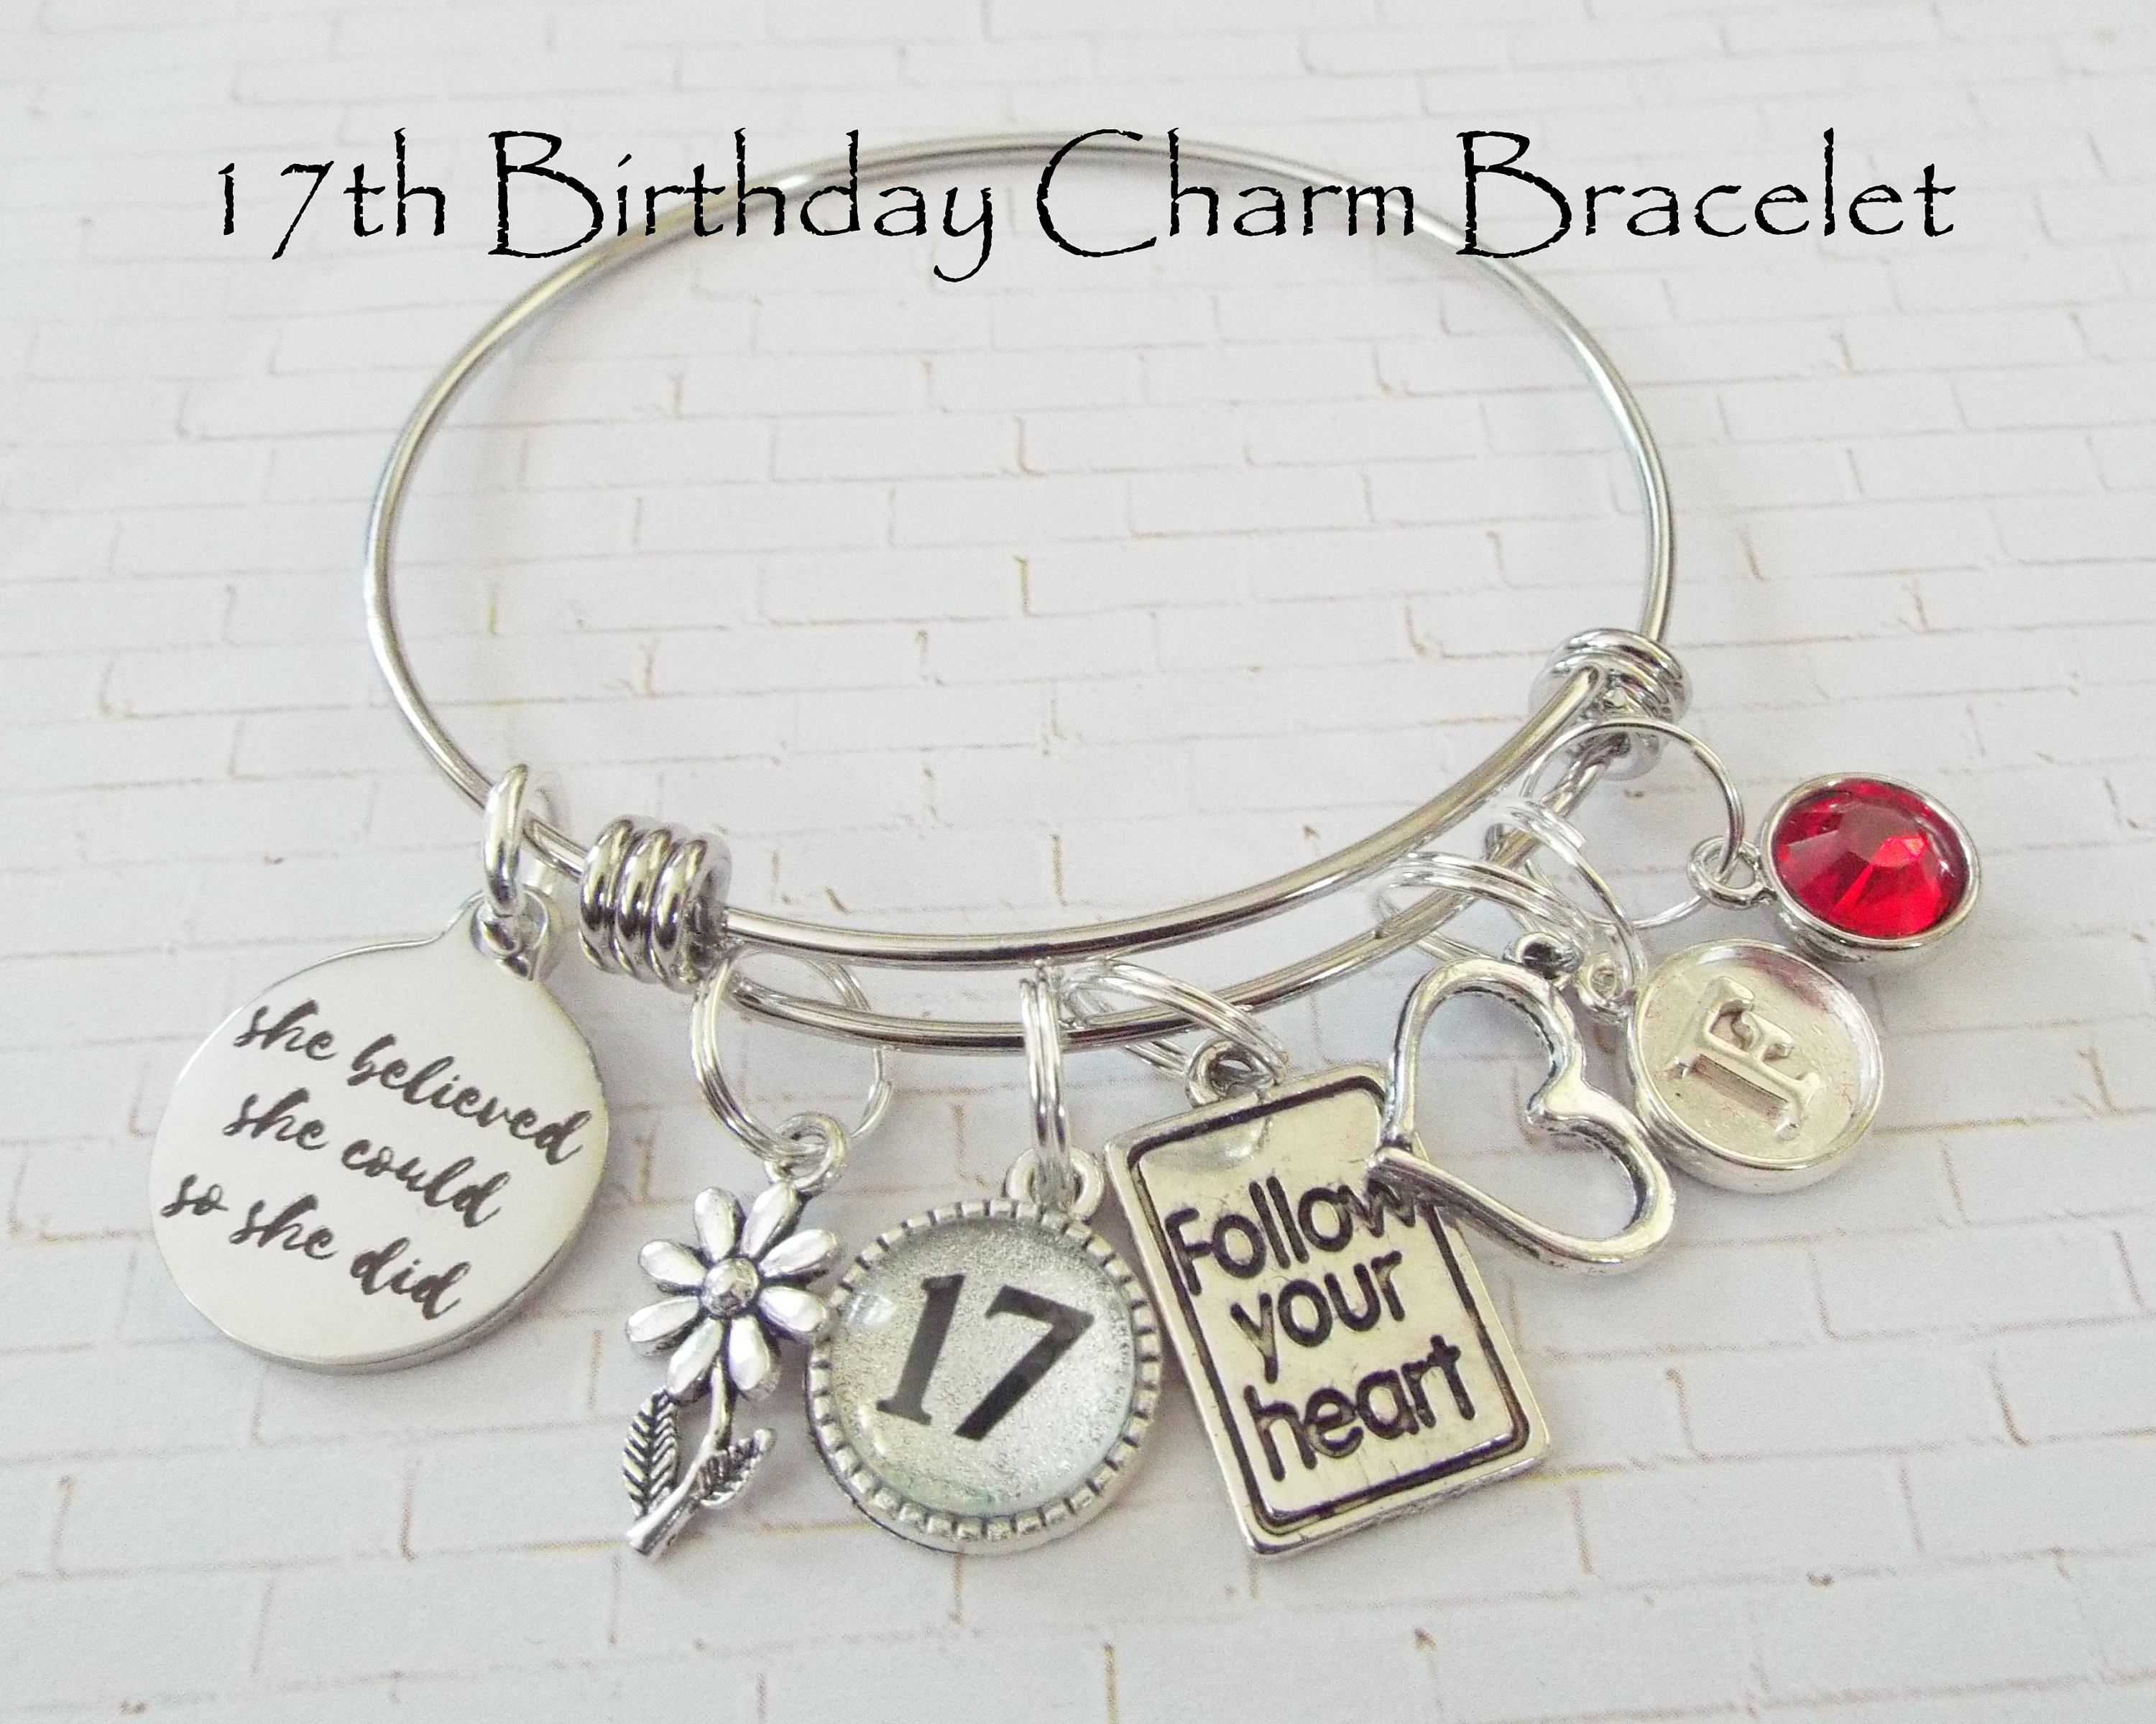 Birthday Gift For Teenage Girl 17th Happy Charm Bracelet Custom Personalized Her